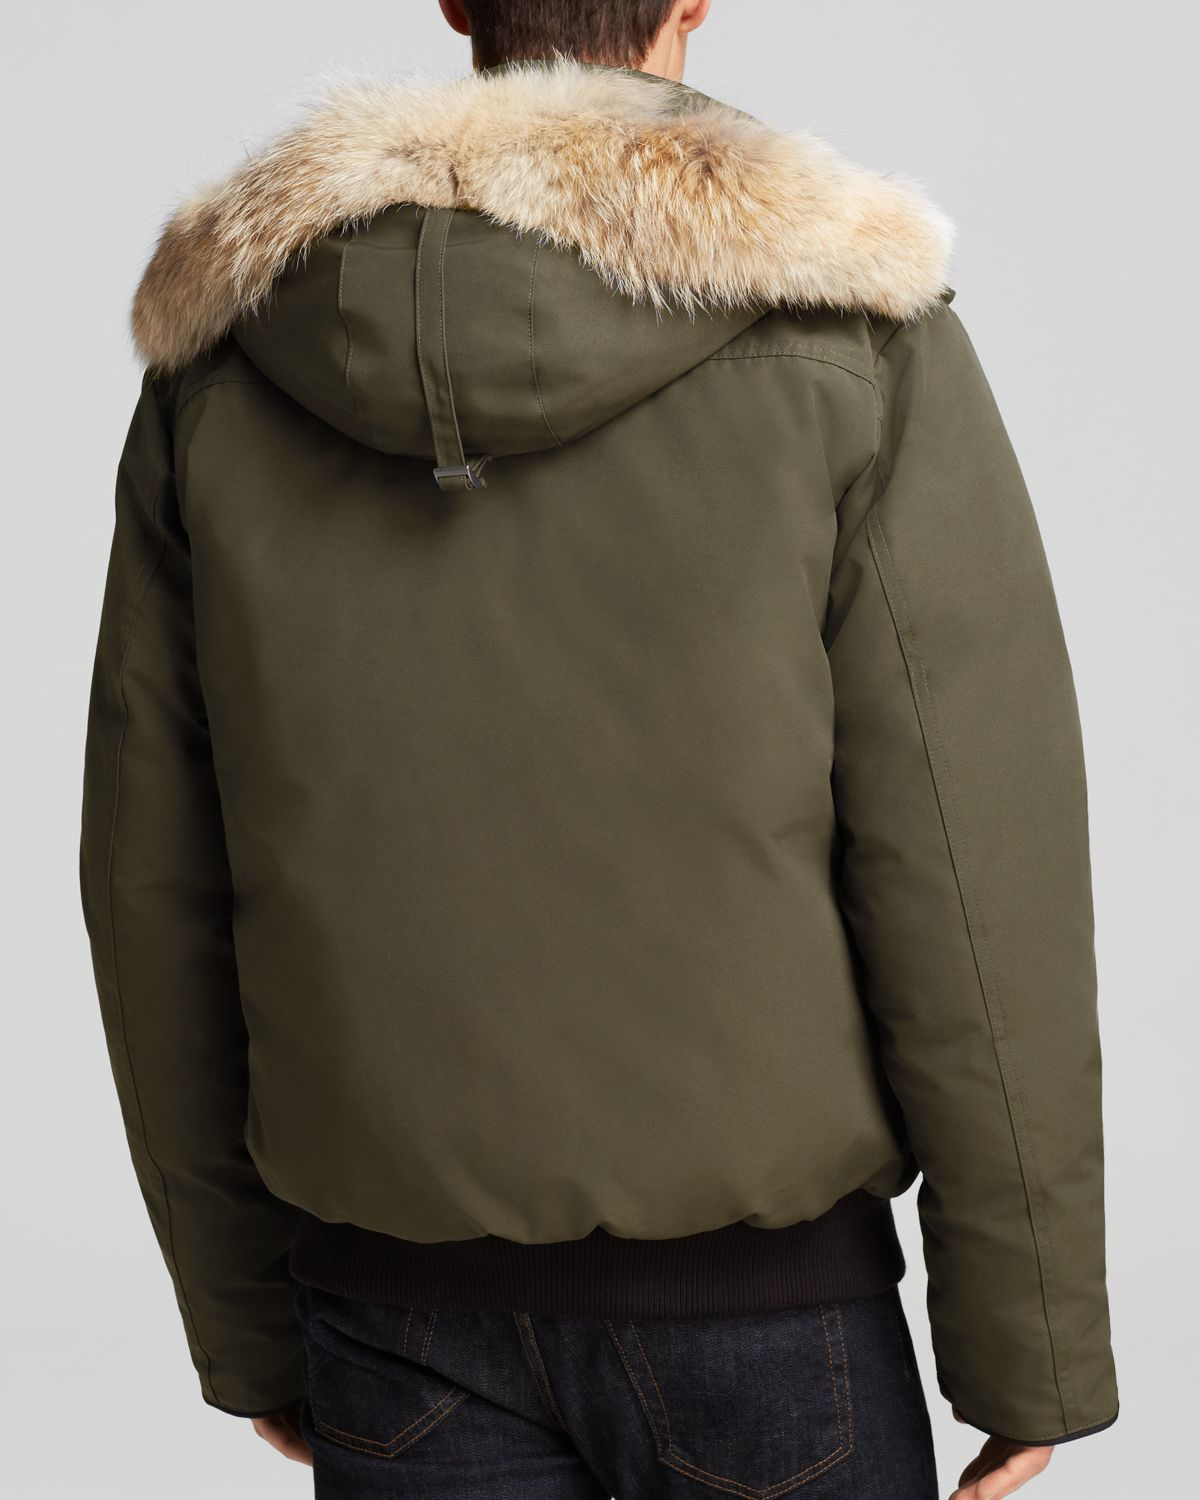 Canada Goose' Langford Parka with Fur Hood - Military Green